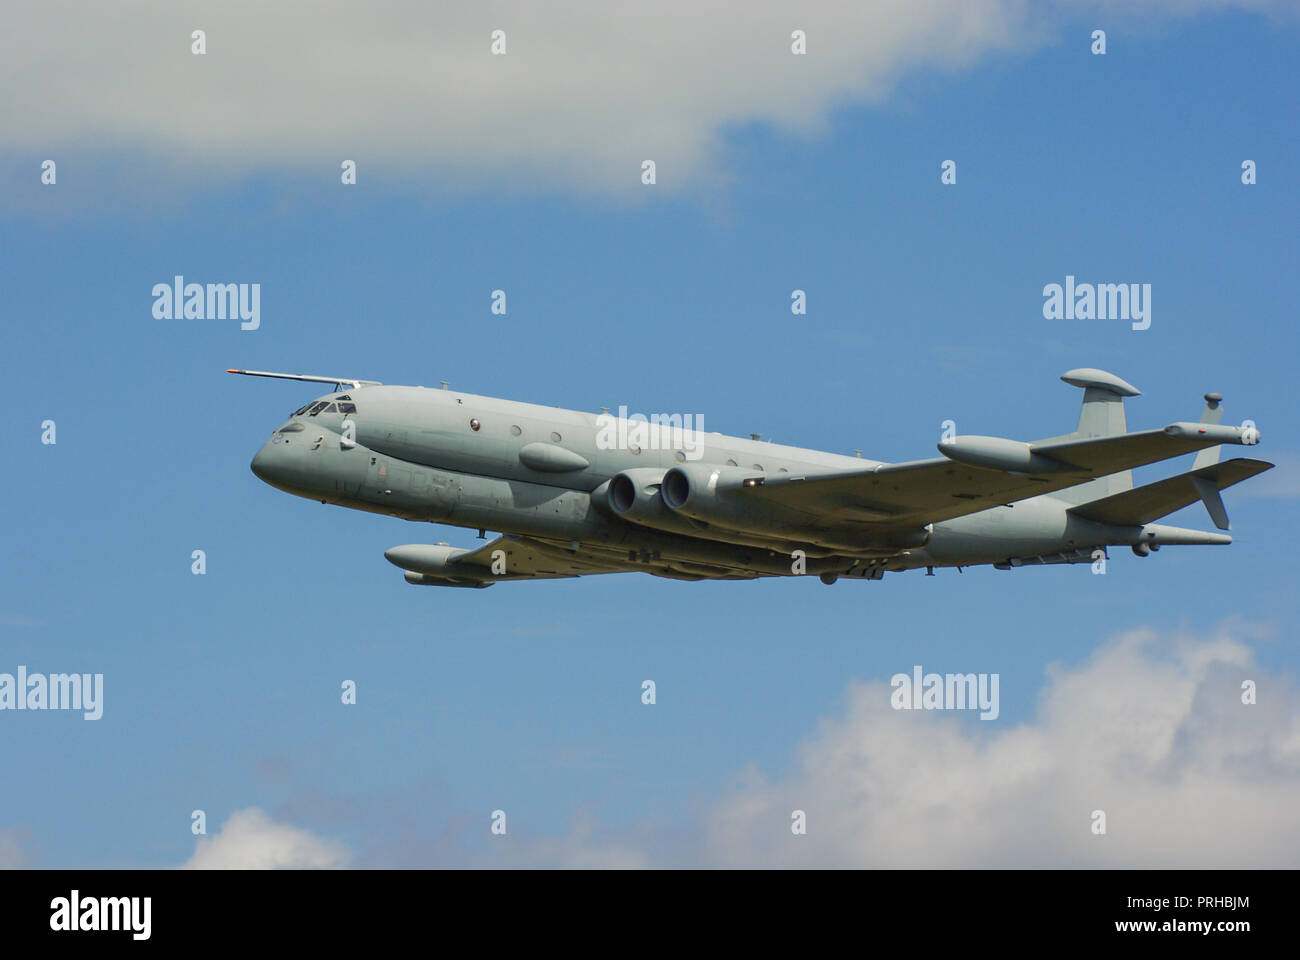 BAE Systems Nimrod MRA4 maritime patrol and attack aircraft intended to replace the Hawker Siddeley Nimrod MR2. Anti submarine warfare. ZJ518. Axed Stock Photo